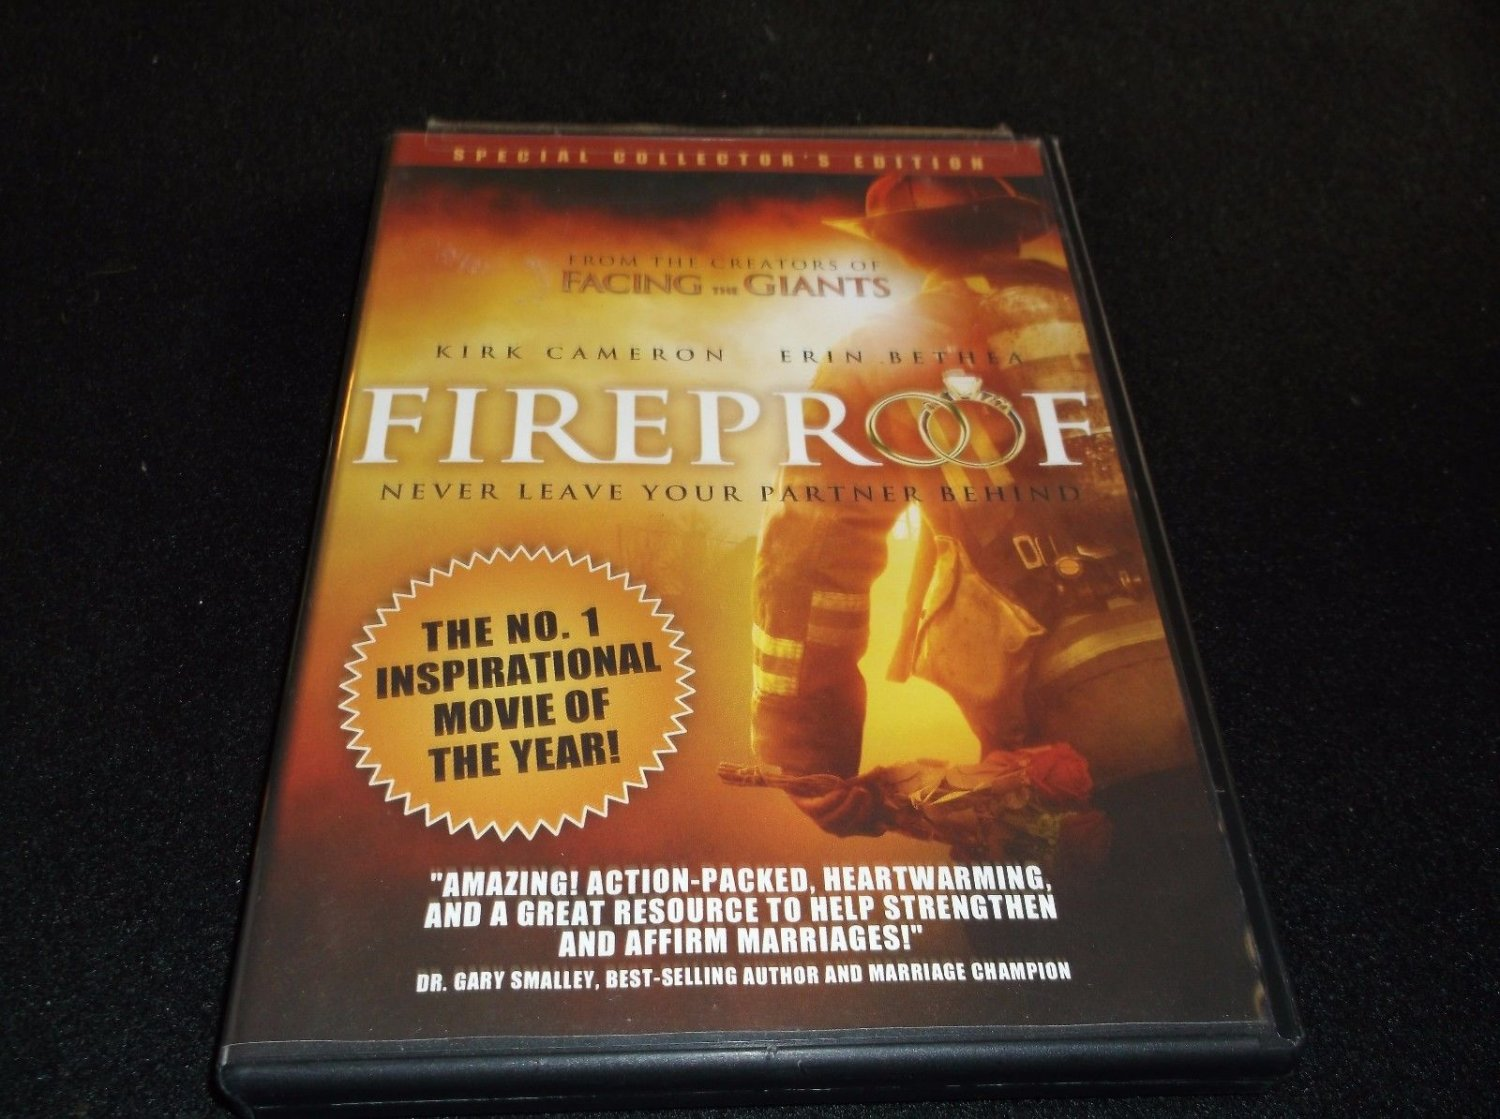 Fireproof(2008) DVD Special Collector's Edition, Kirk Cameron Erin Bethea